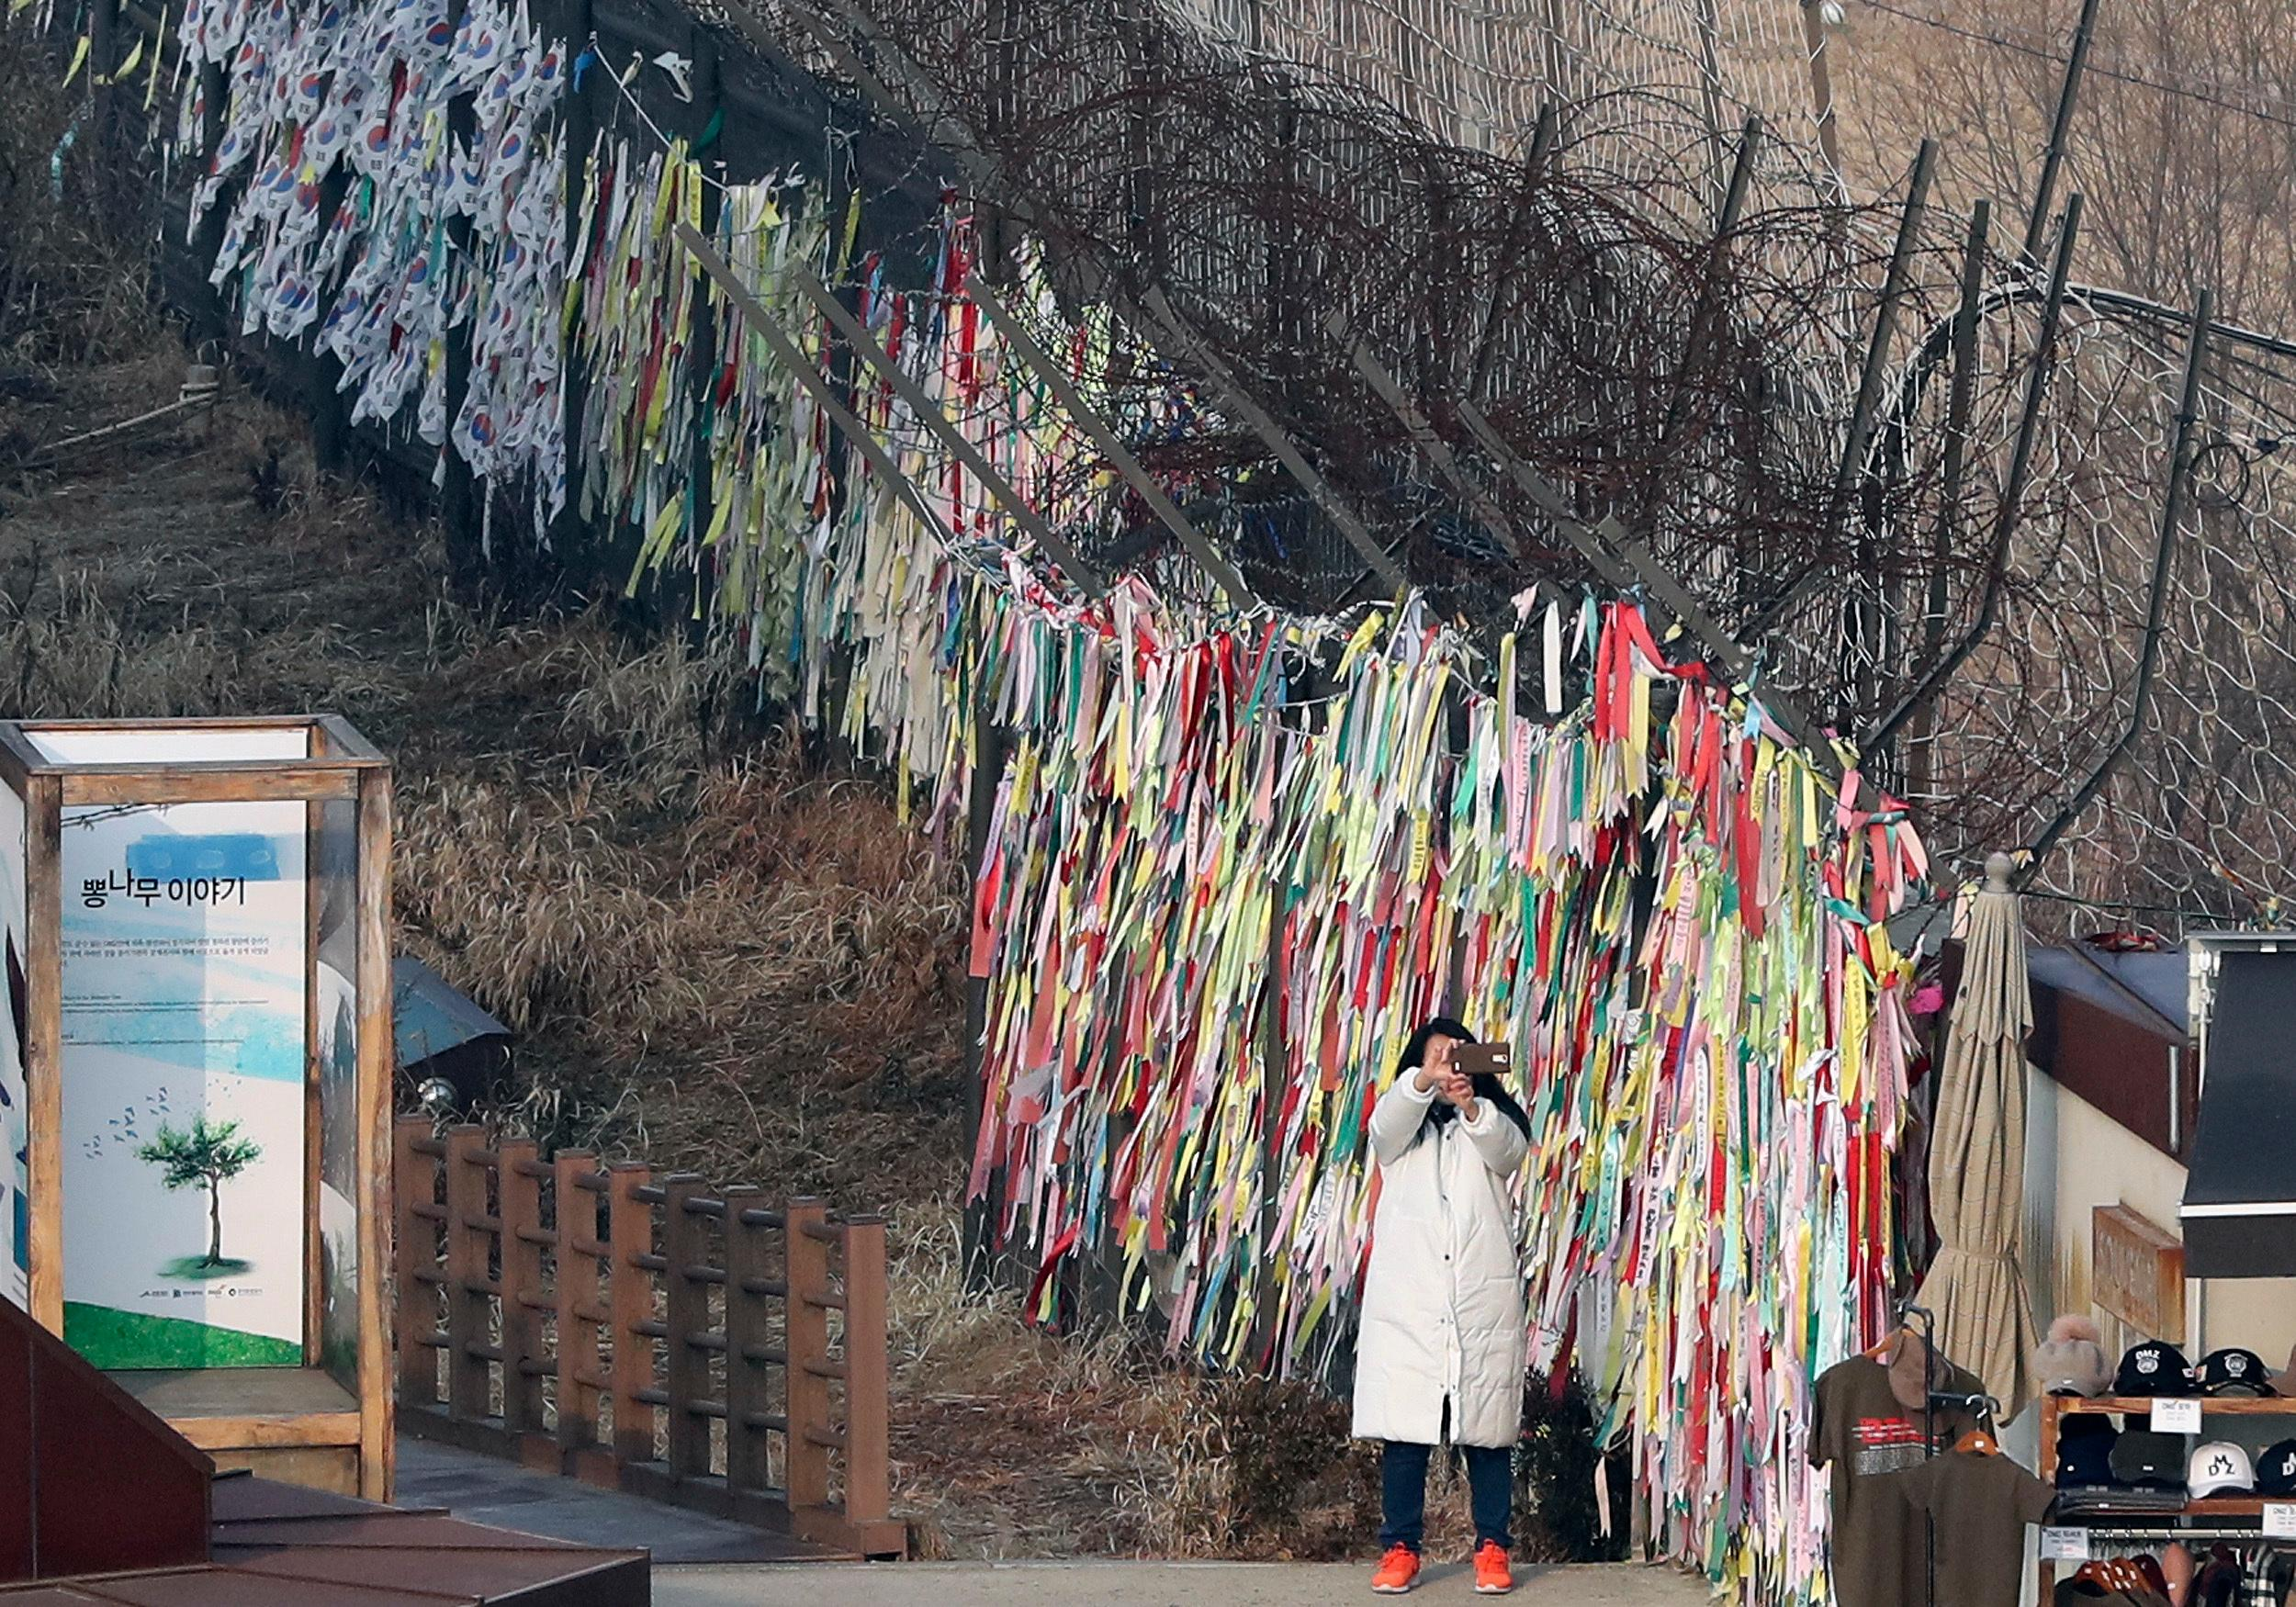 A visitor takes a selfie near the wire fence decorated with ribbons carrying messages to wish for the reunification of the two Koreas at the Imjingak Pavilion in Paju, South Korea, Wednesday, Jan. 17, 2018. The two Koreas are meeting Wednesday for the third time in about 10 days to continue their discussions on Olympics cooperation, days ahead of talks with the IOC on North Korean participation in the upcoming Winter Games in the South. (AP Photo/Lee Jin-man)